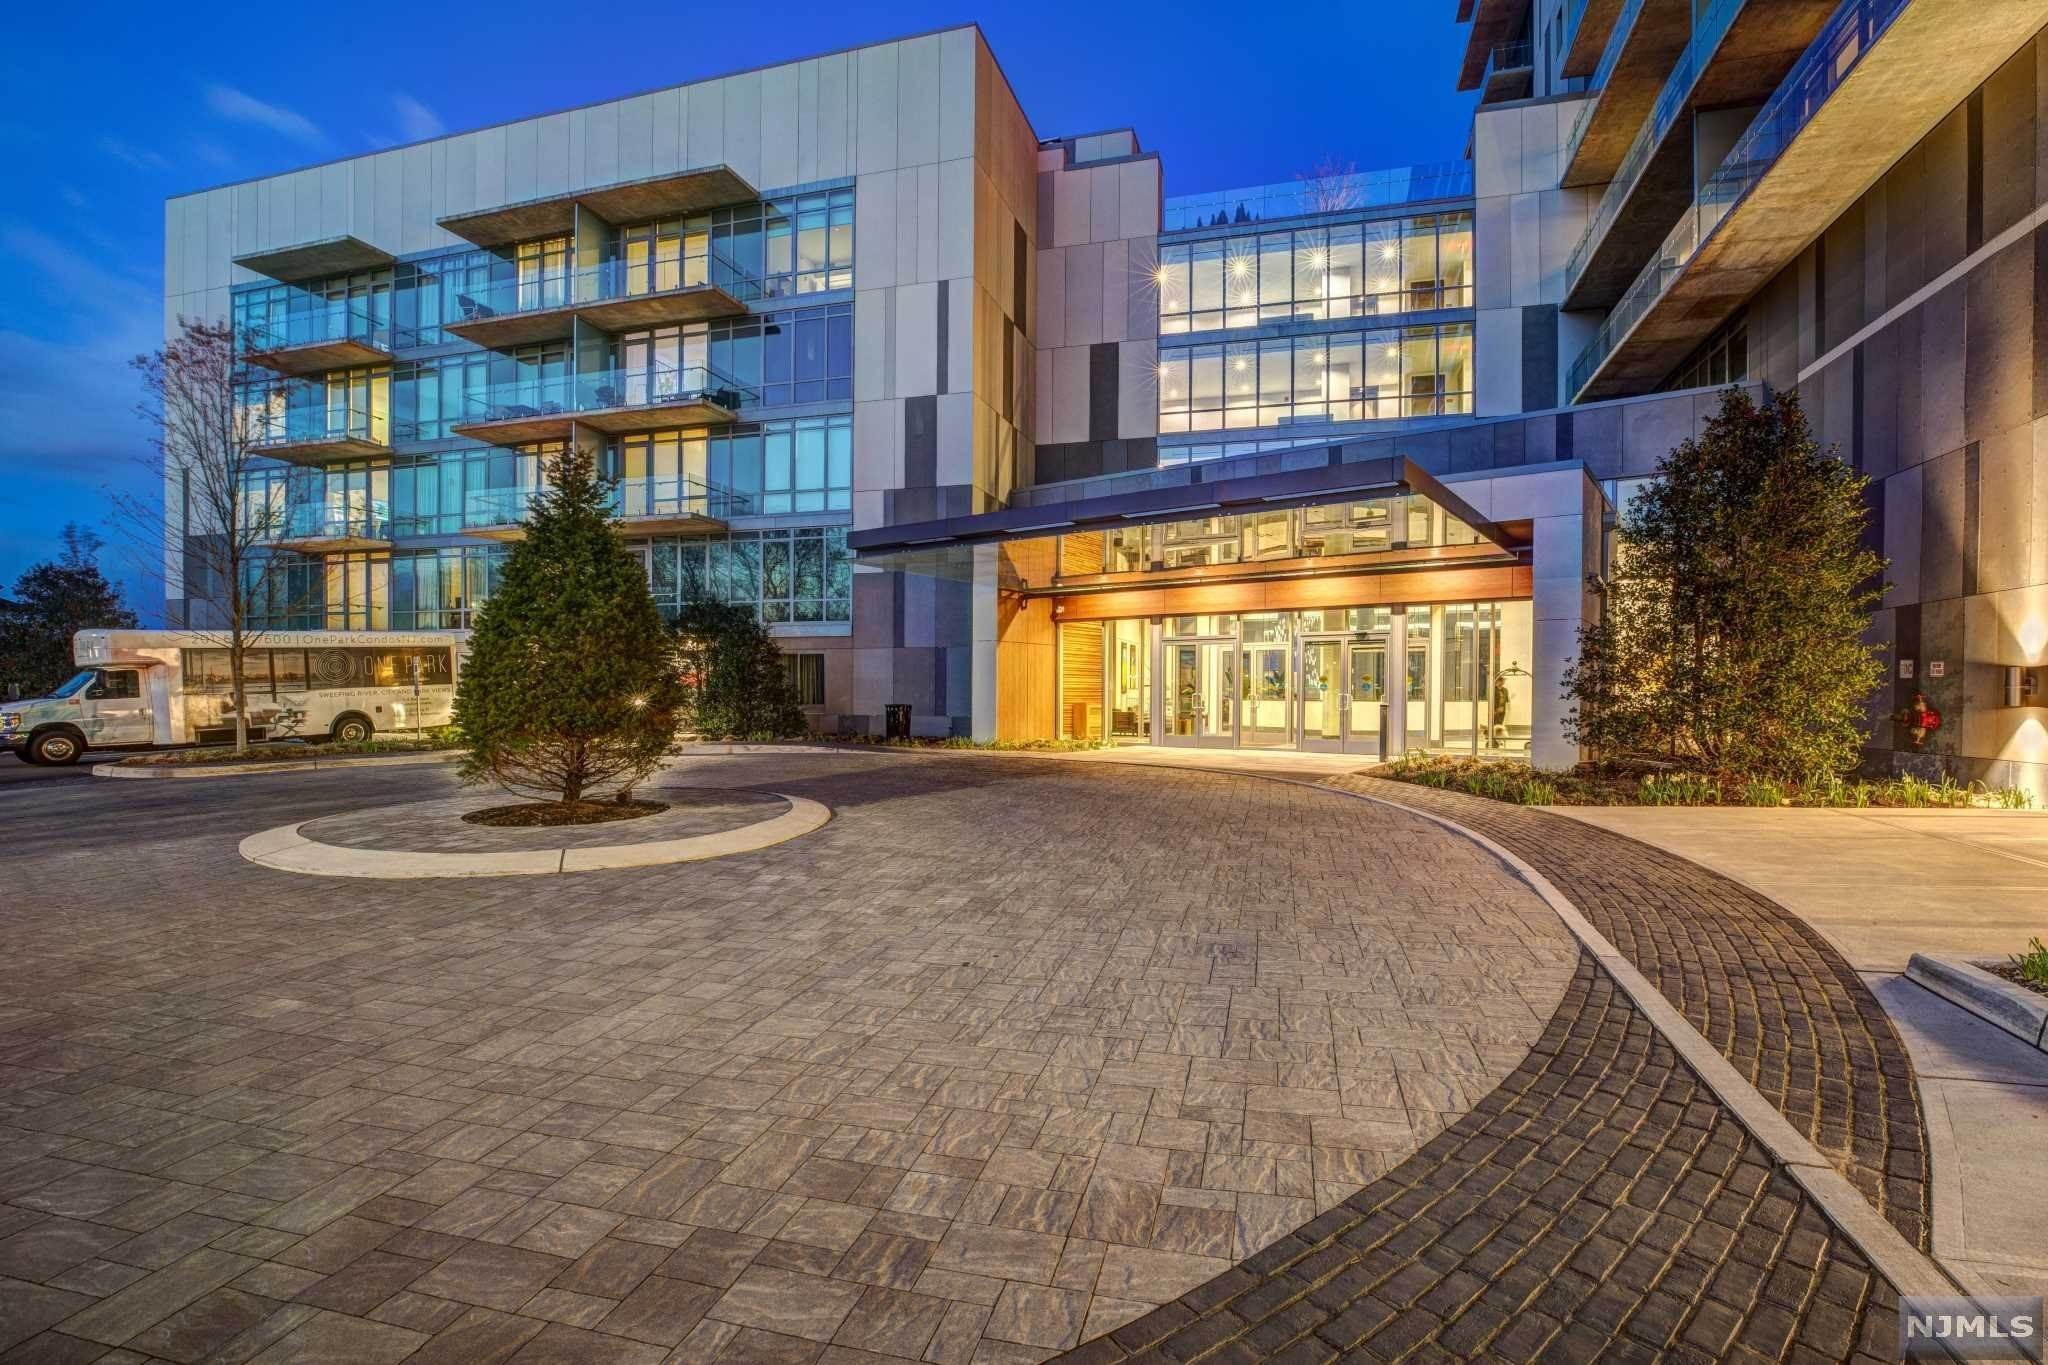 Condominium for Sale at 320 Adolphus Avenue #607 Cliffside Park, New Jersey, 07010 United States